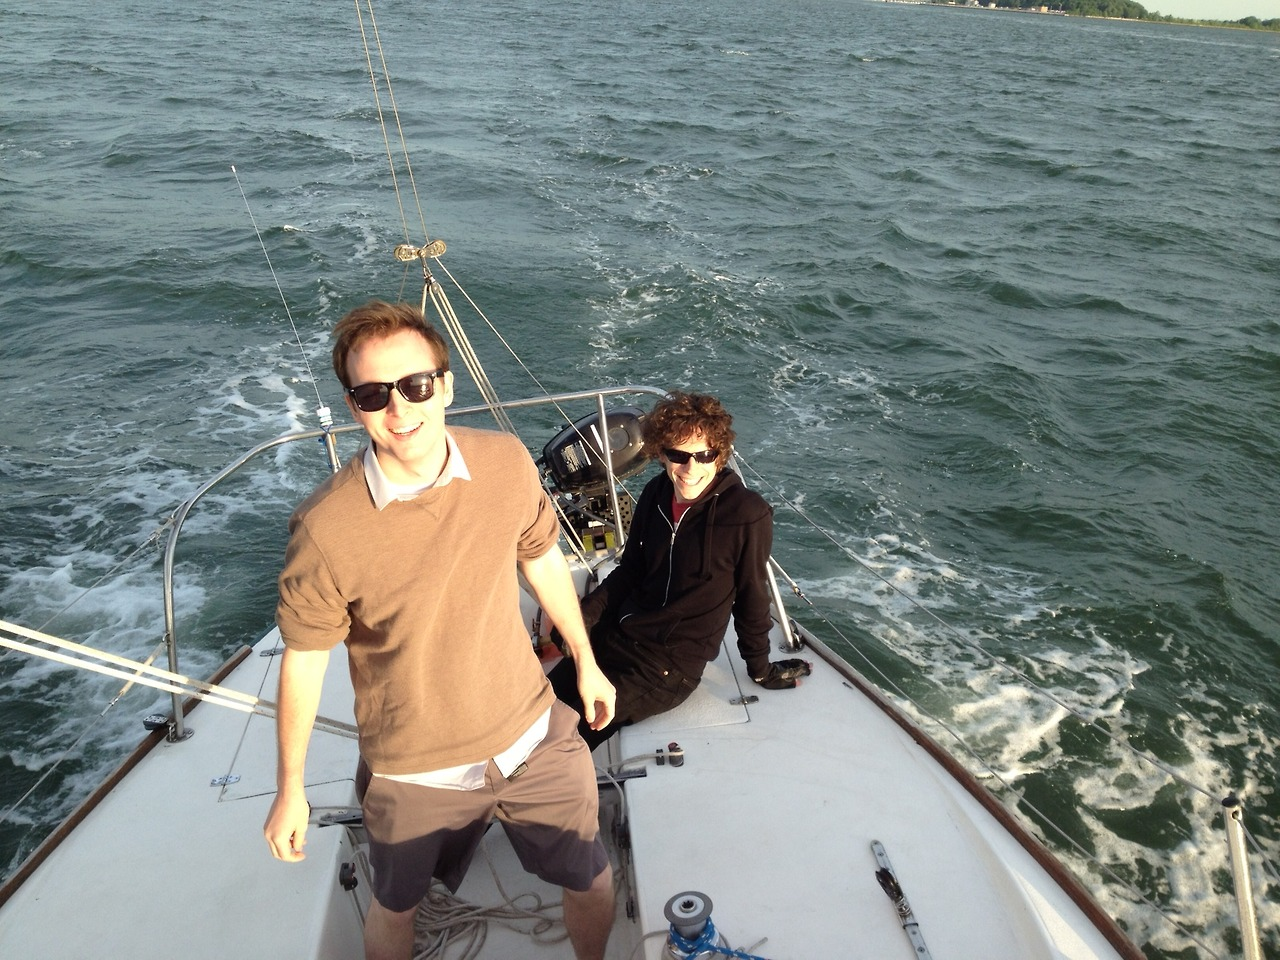 Eric Herot & Alex Johnson on a sailboat